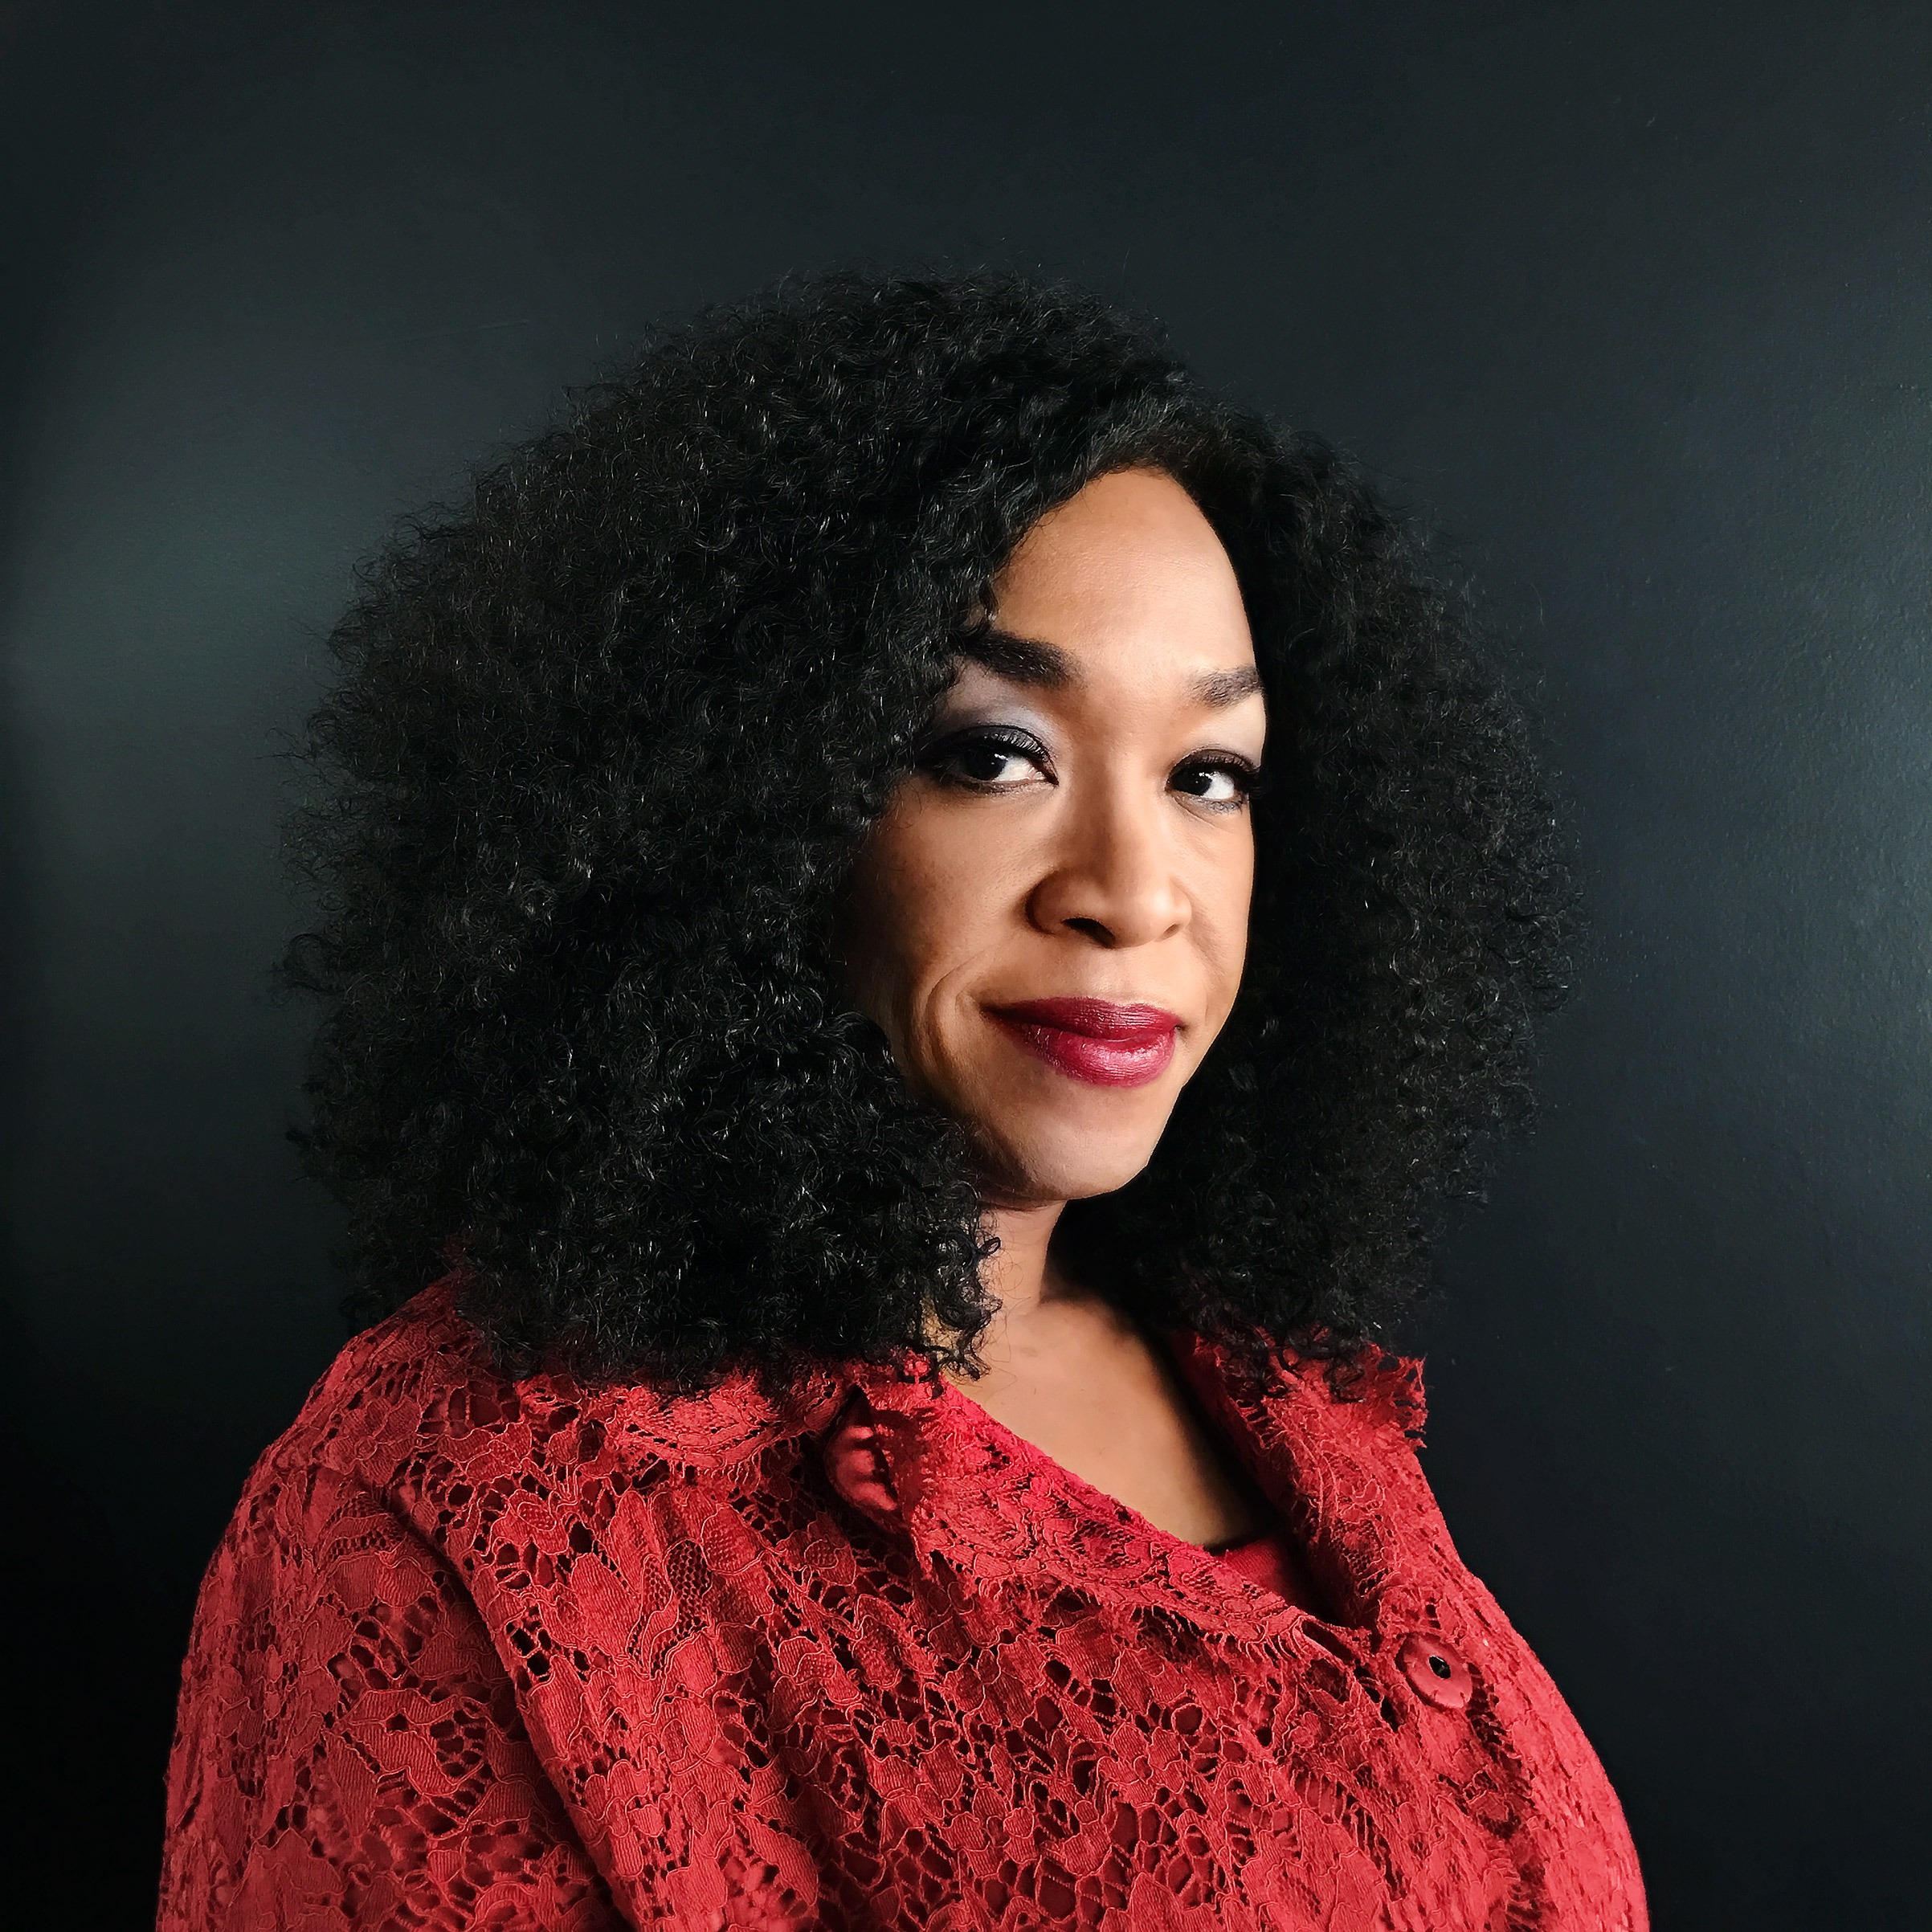 Portrait of Shonda Rhimes, photographed at the W Hotel  in Los Angeles, CA, October 26, 2016.